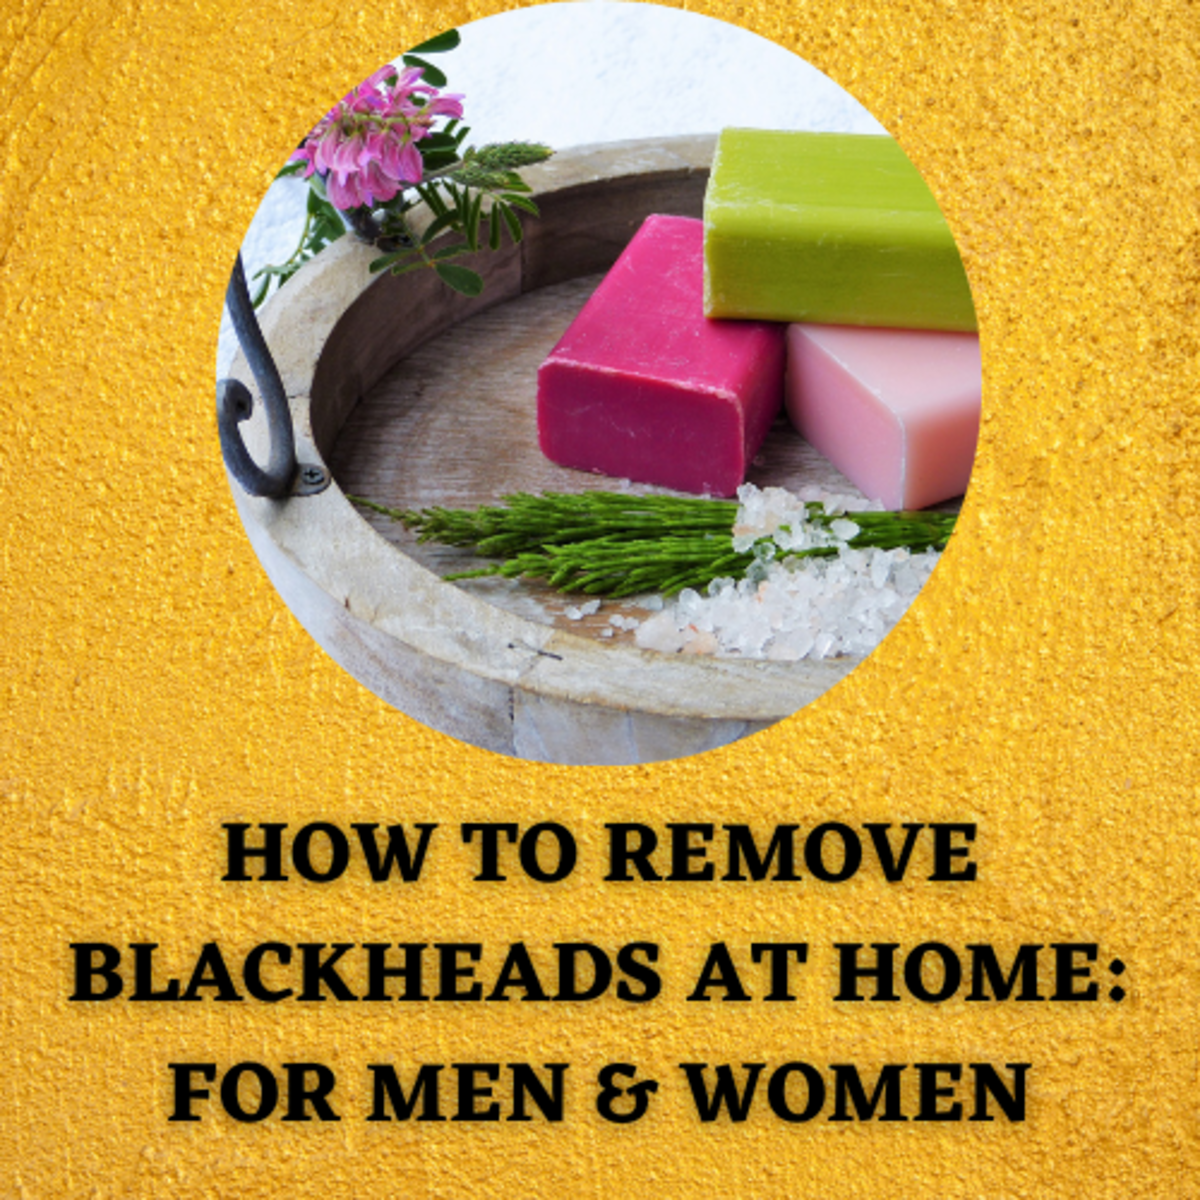 How To Remove Blackheads at Home: For Men & Women